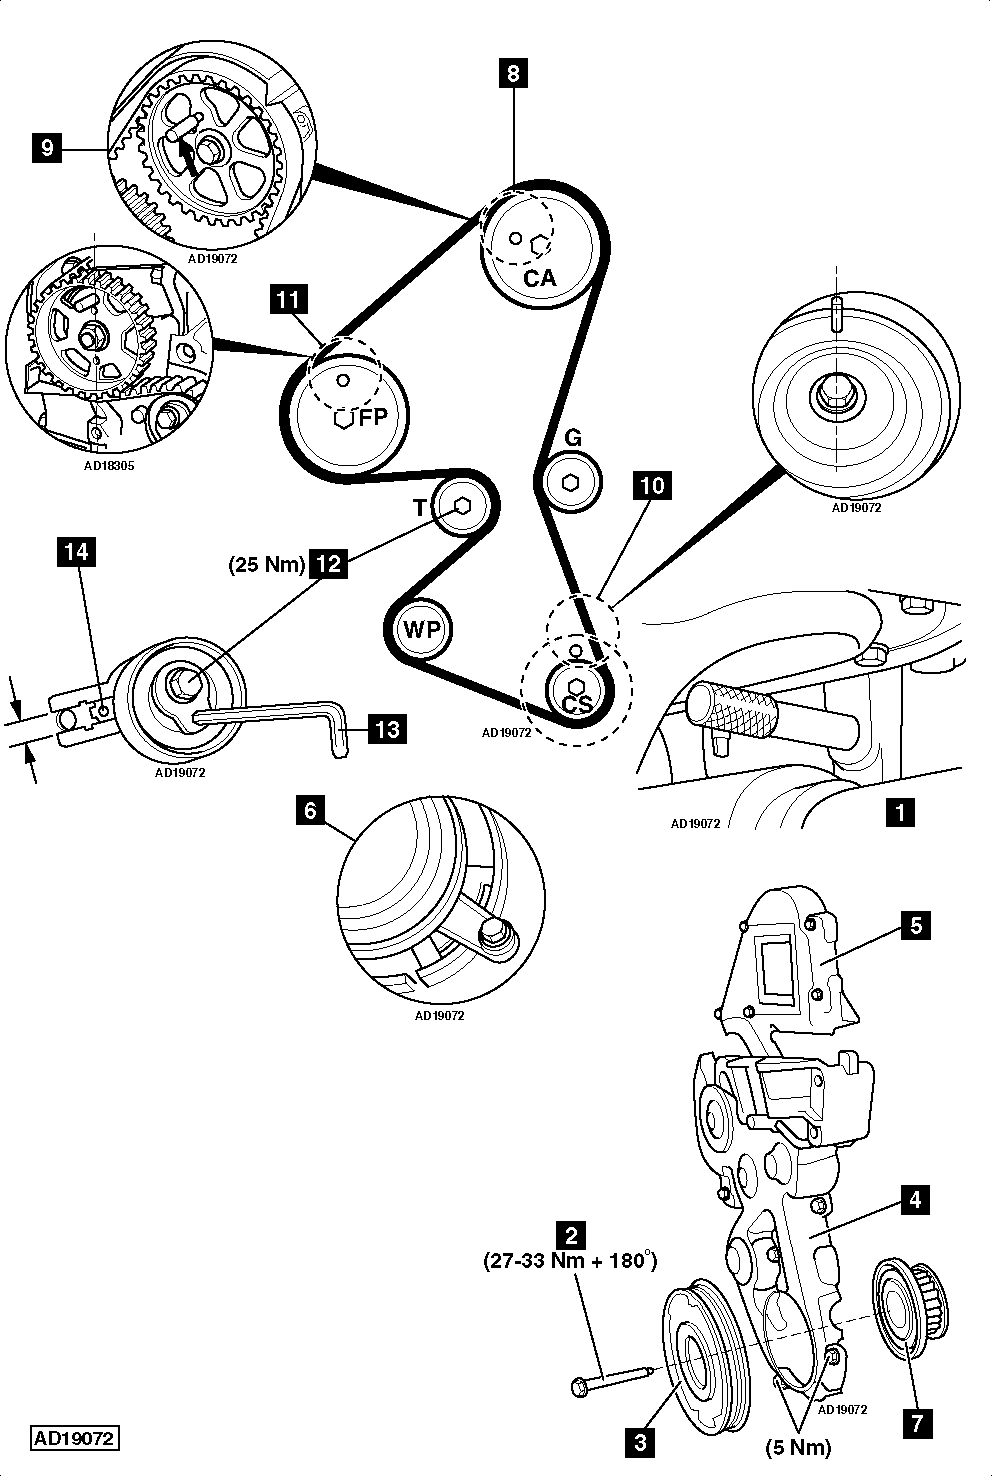 Camshaft Position Sensor Location Peugeot 307 on 2007 ford f 150 5 4 engine diagram